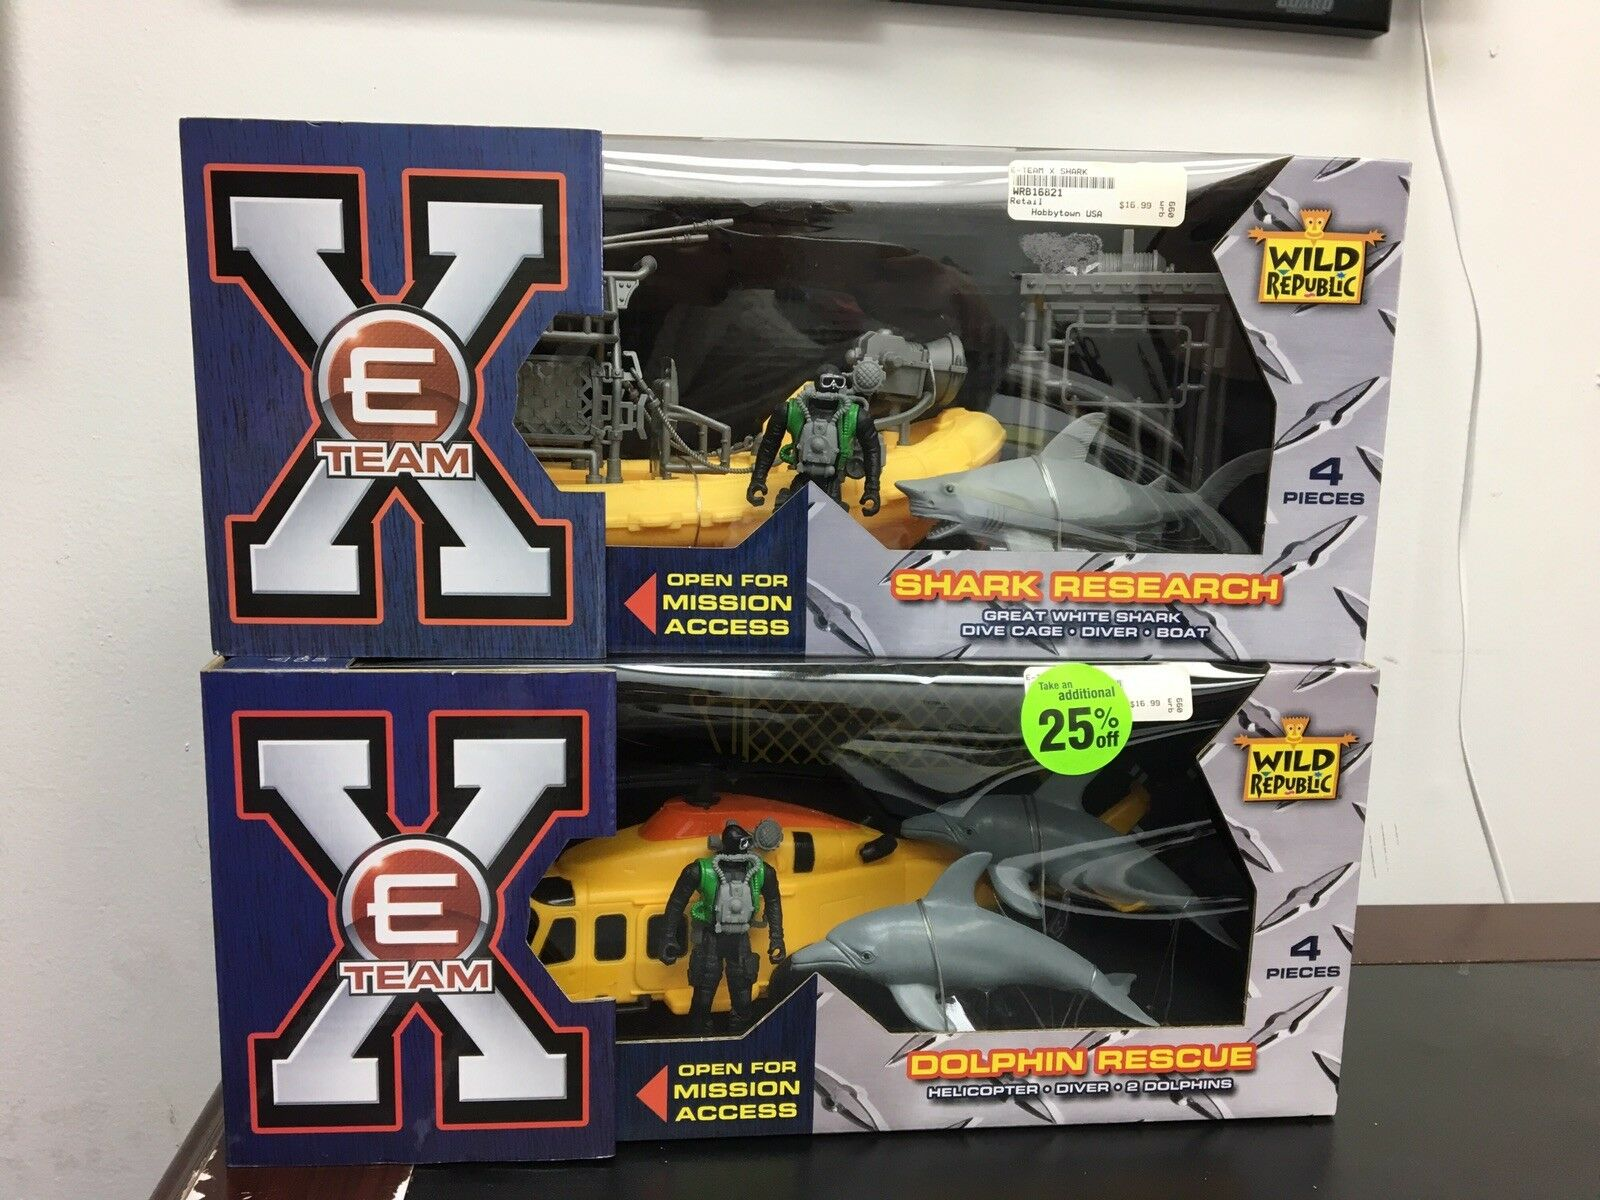 E-Team X Wild Republic Shark Research & Dolphin Rescue Action Figures New In Box